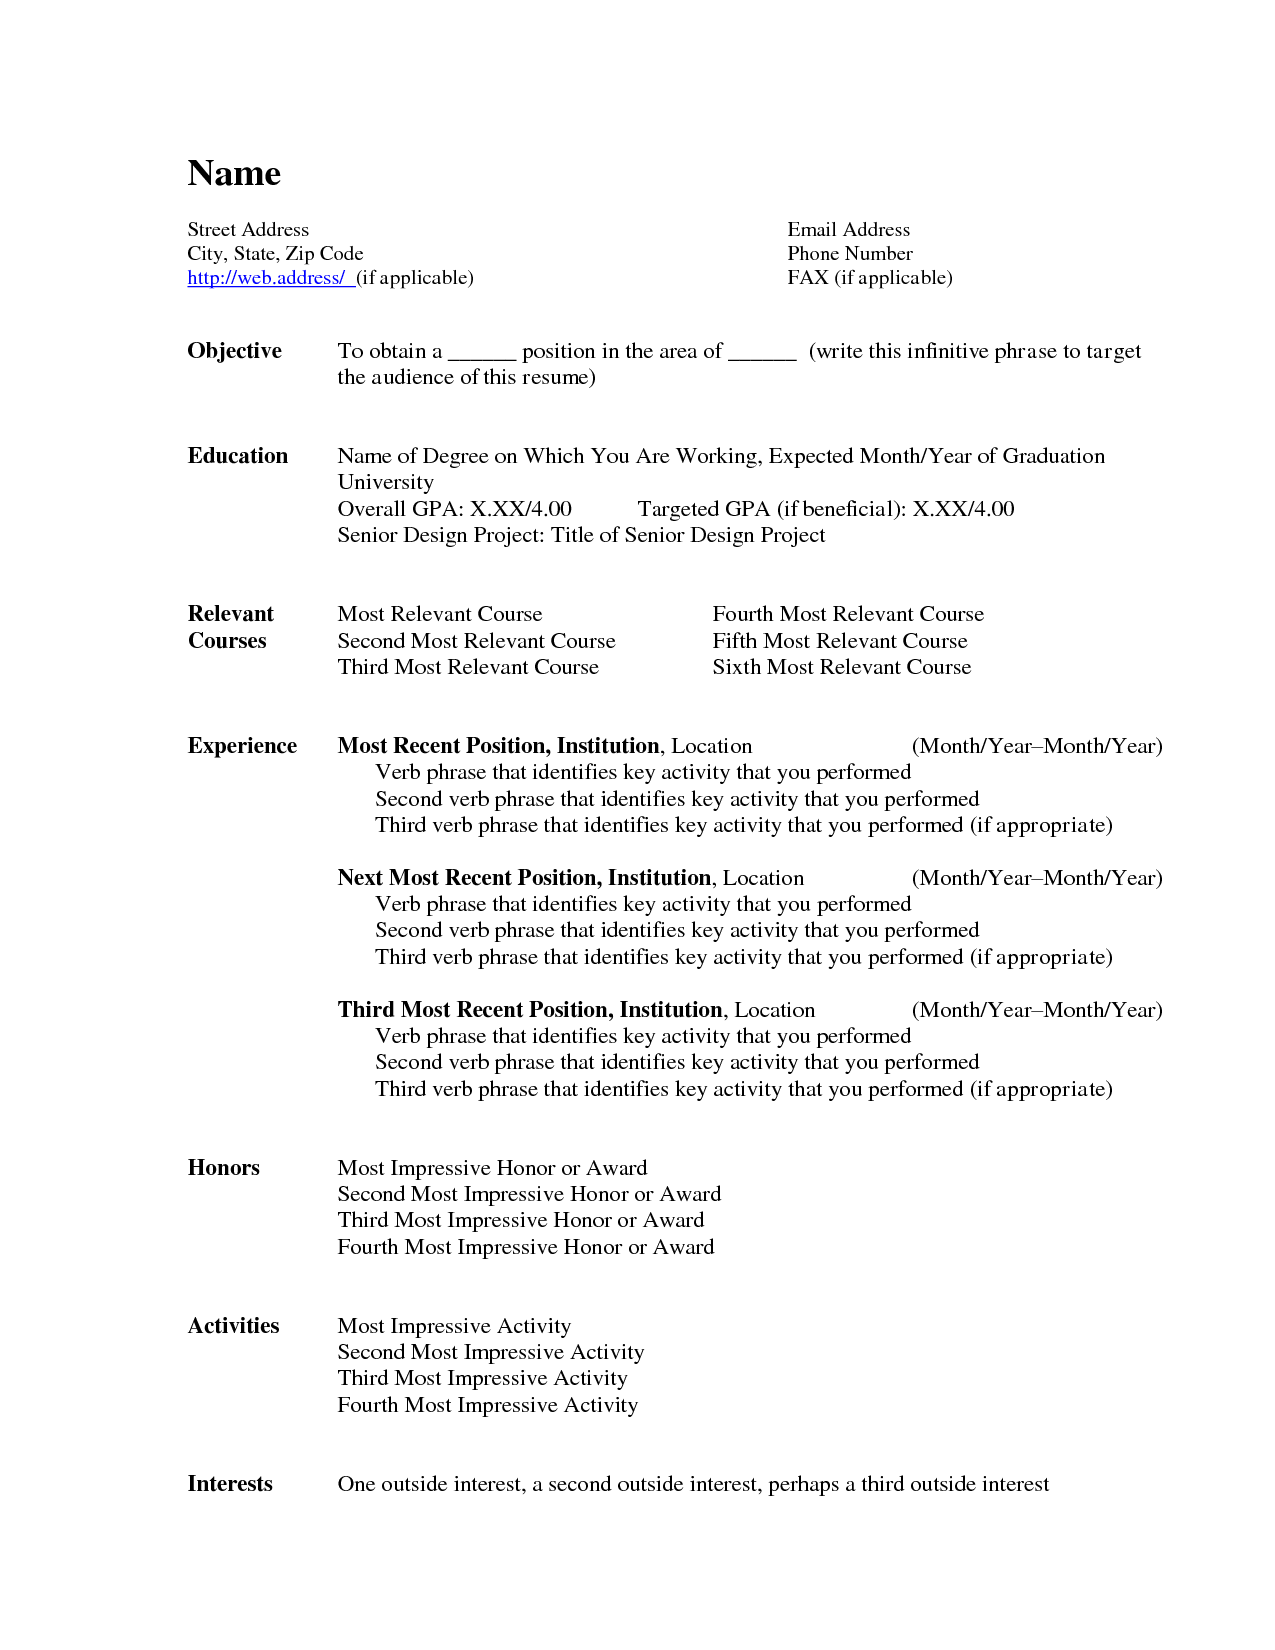 Free Resume Templates Word 2010 Extraordinary Microsoft Word Resume Template Resume Builder Resume Resume  Http